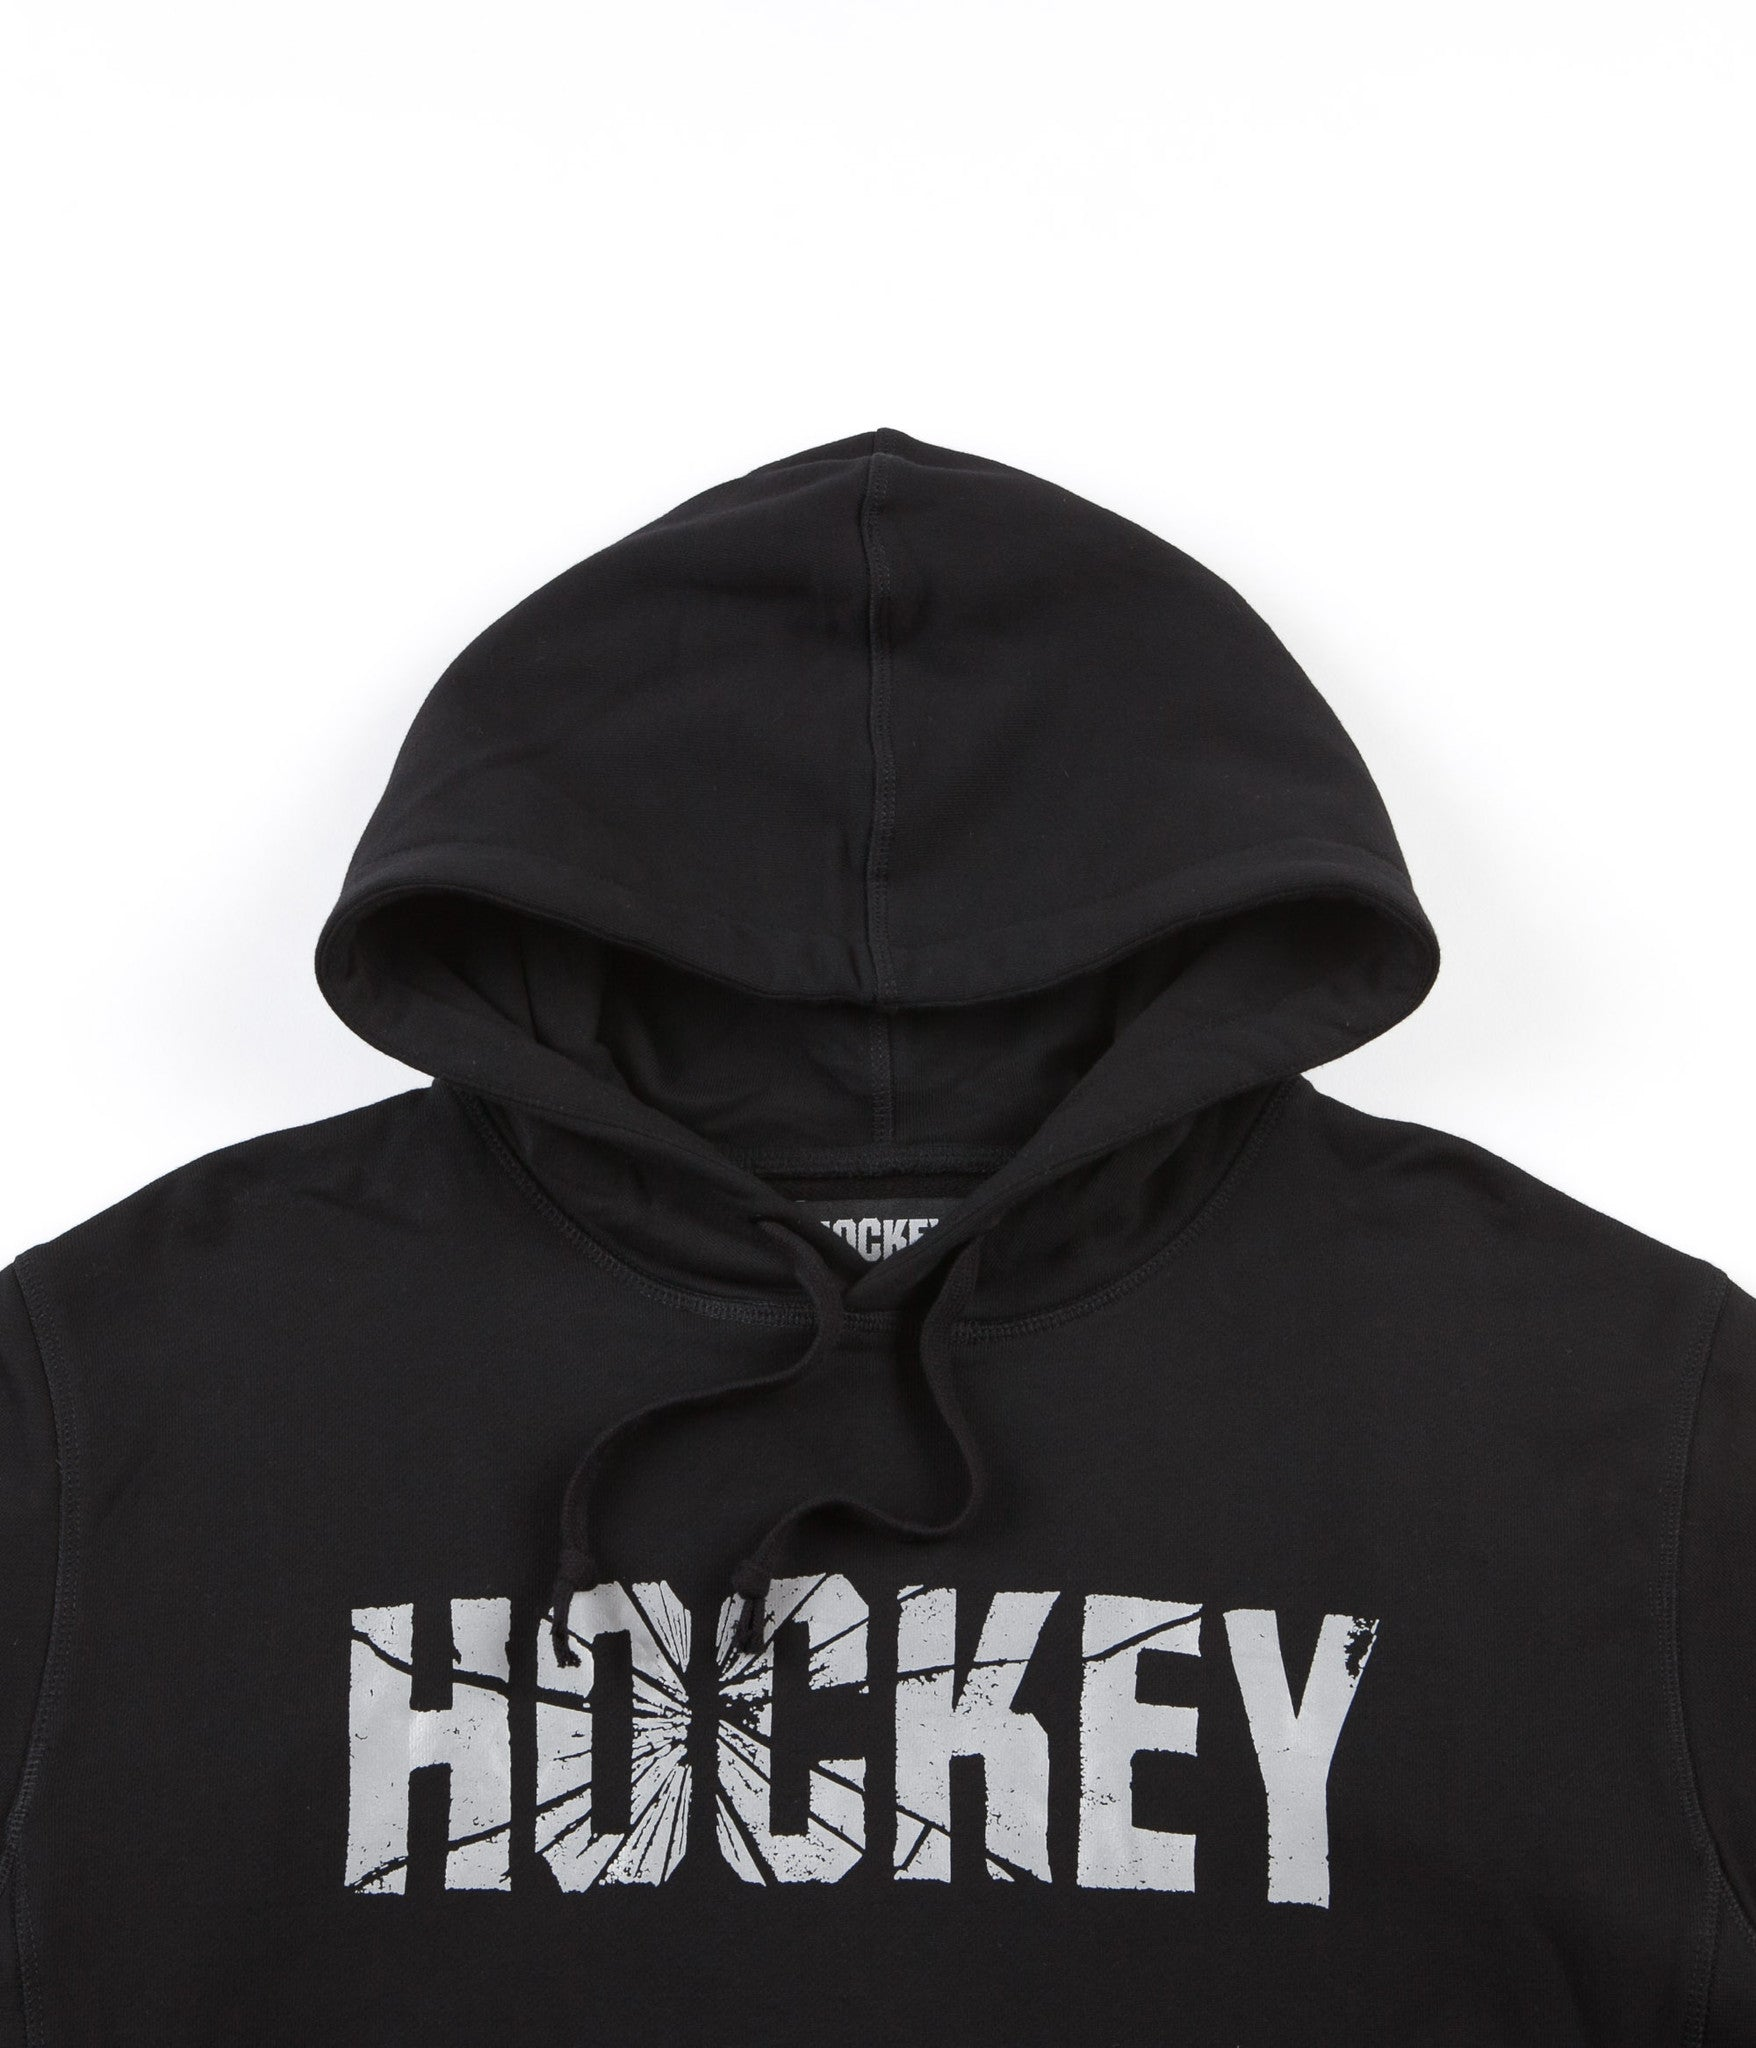 Hockey Shattered Hooded Sweatshirt - Black